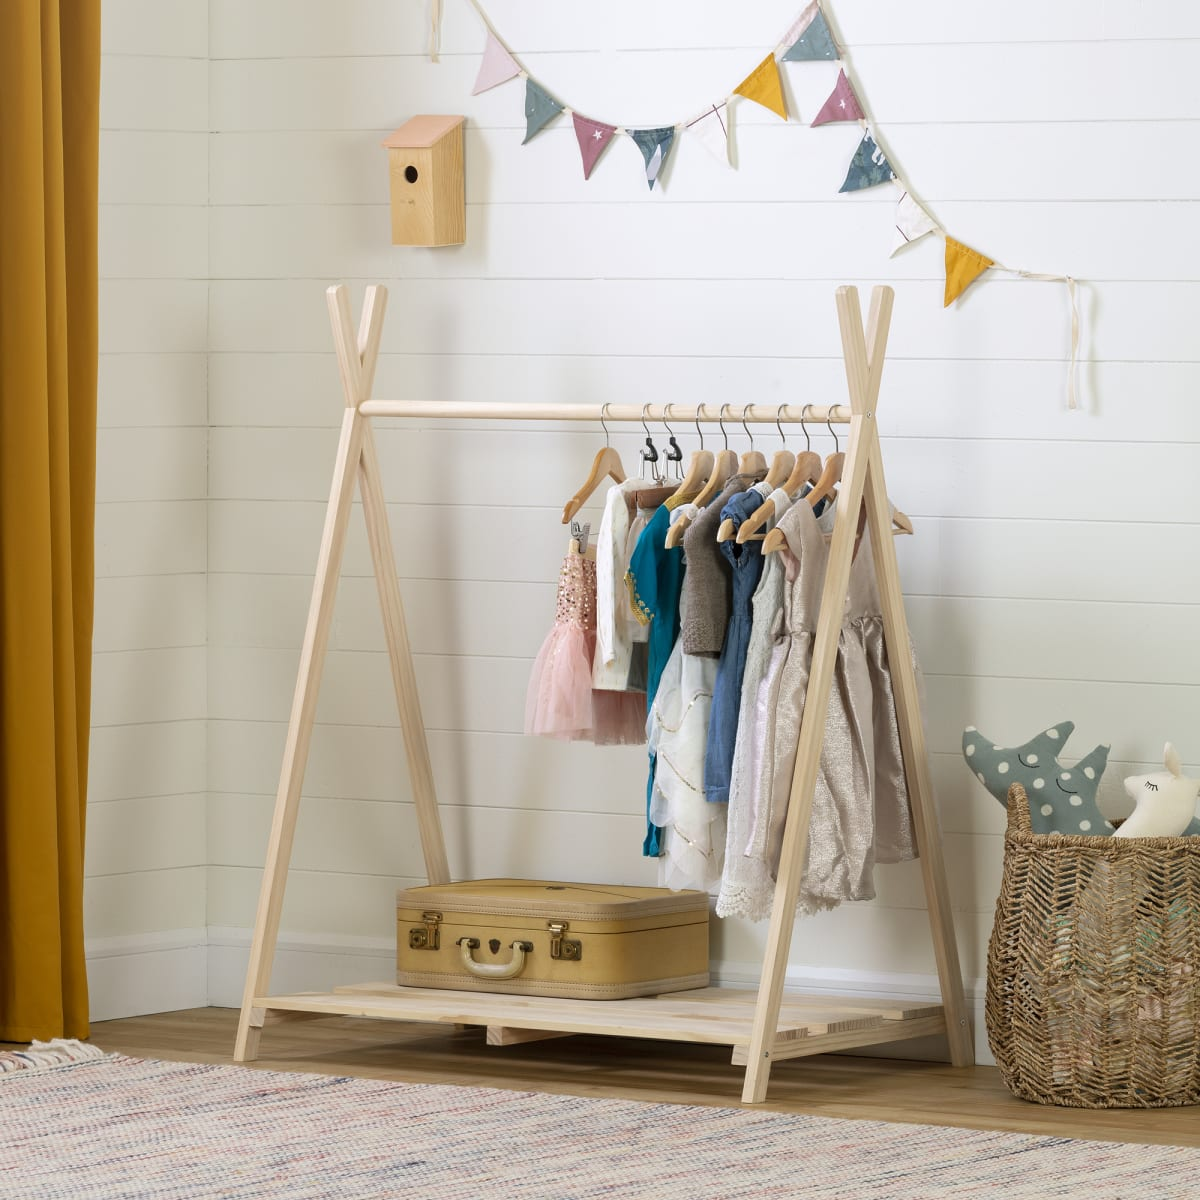 Sweedi Scandinavian Clothes Rack For Kids Play Furniture Playroom Baby And Kids Products South Shore Furniture Us Furniture For Sale Designed And Manufactured In North America